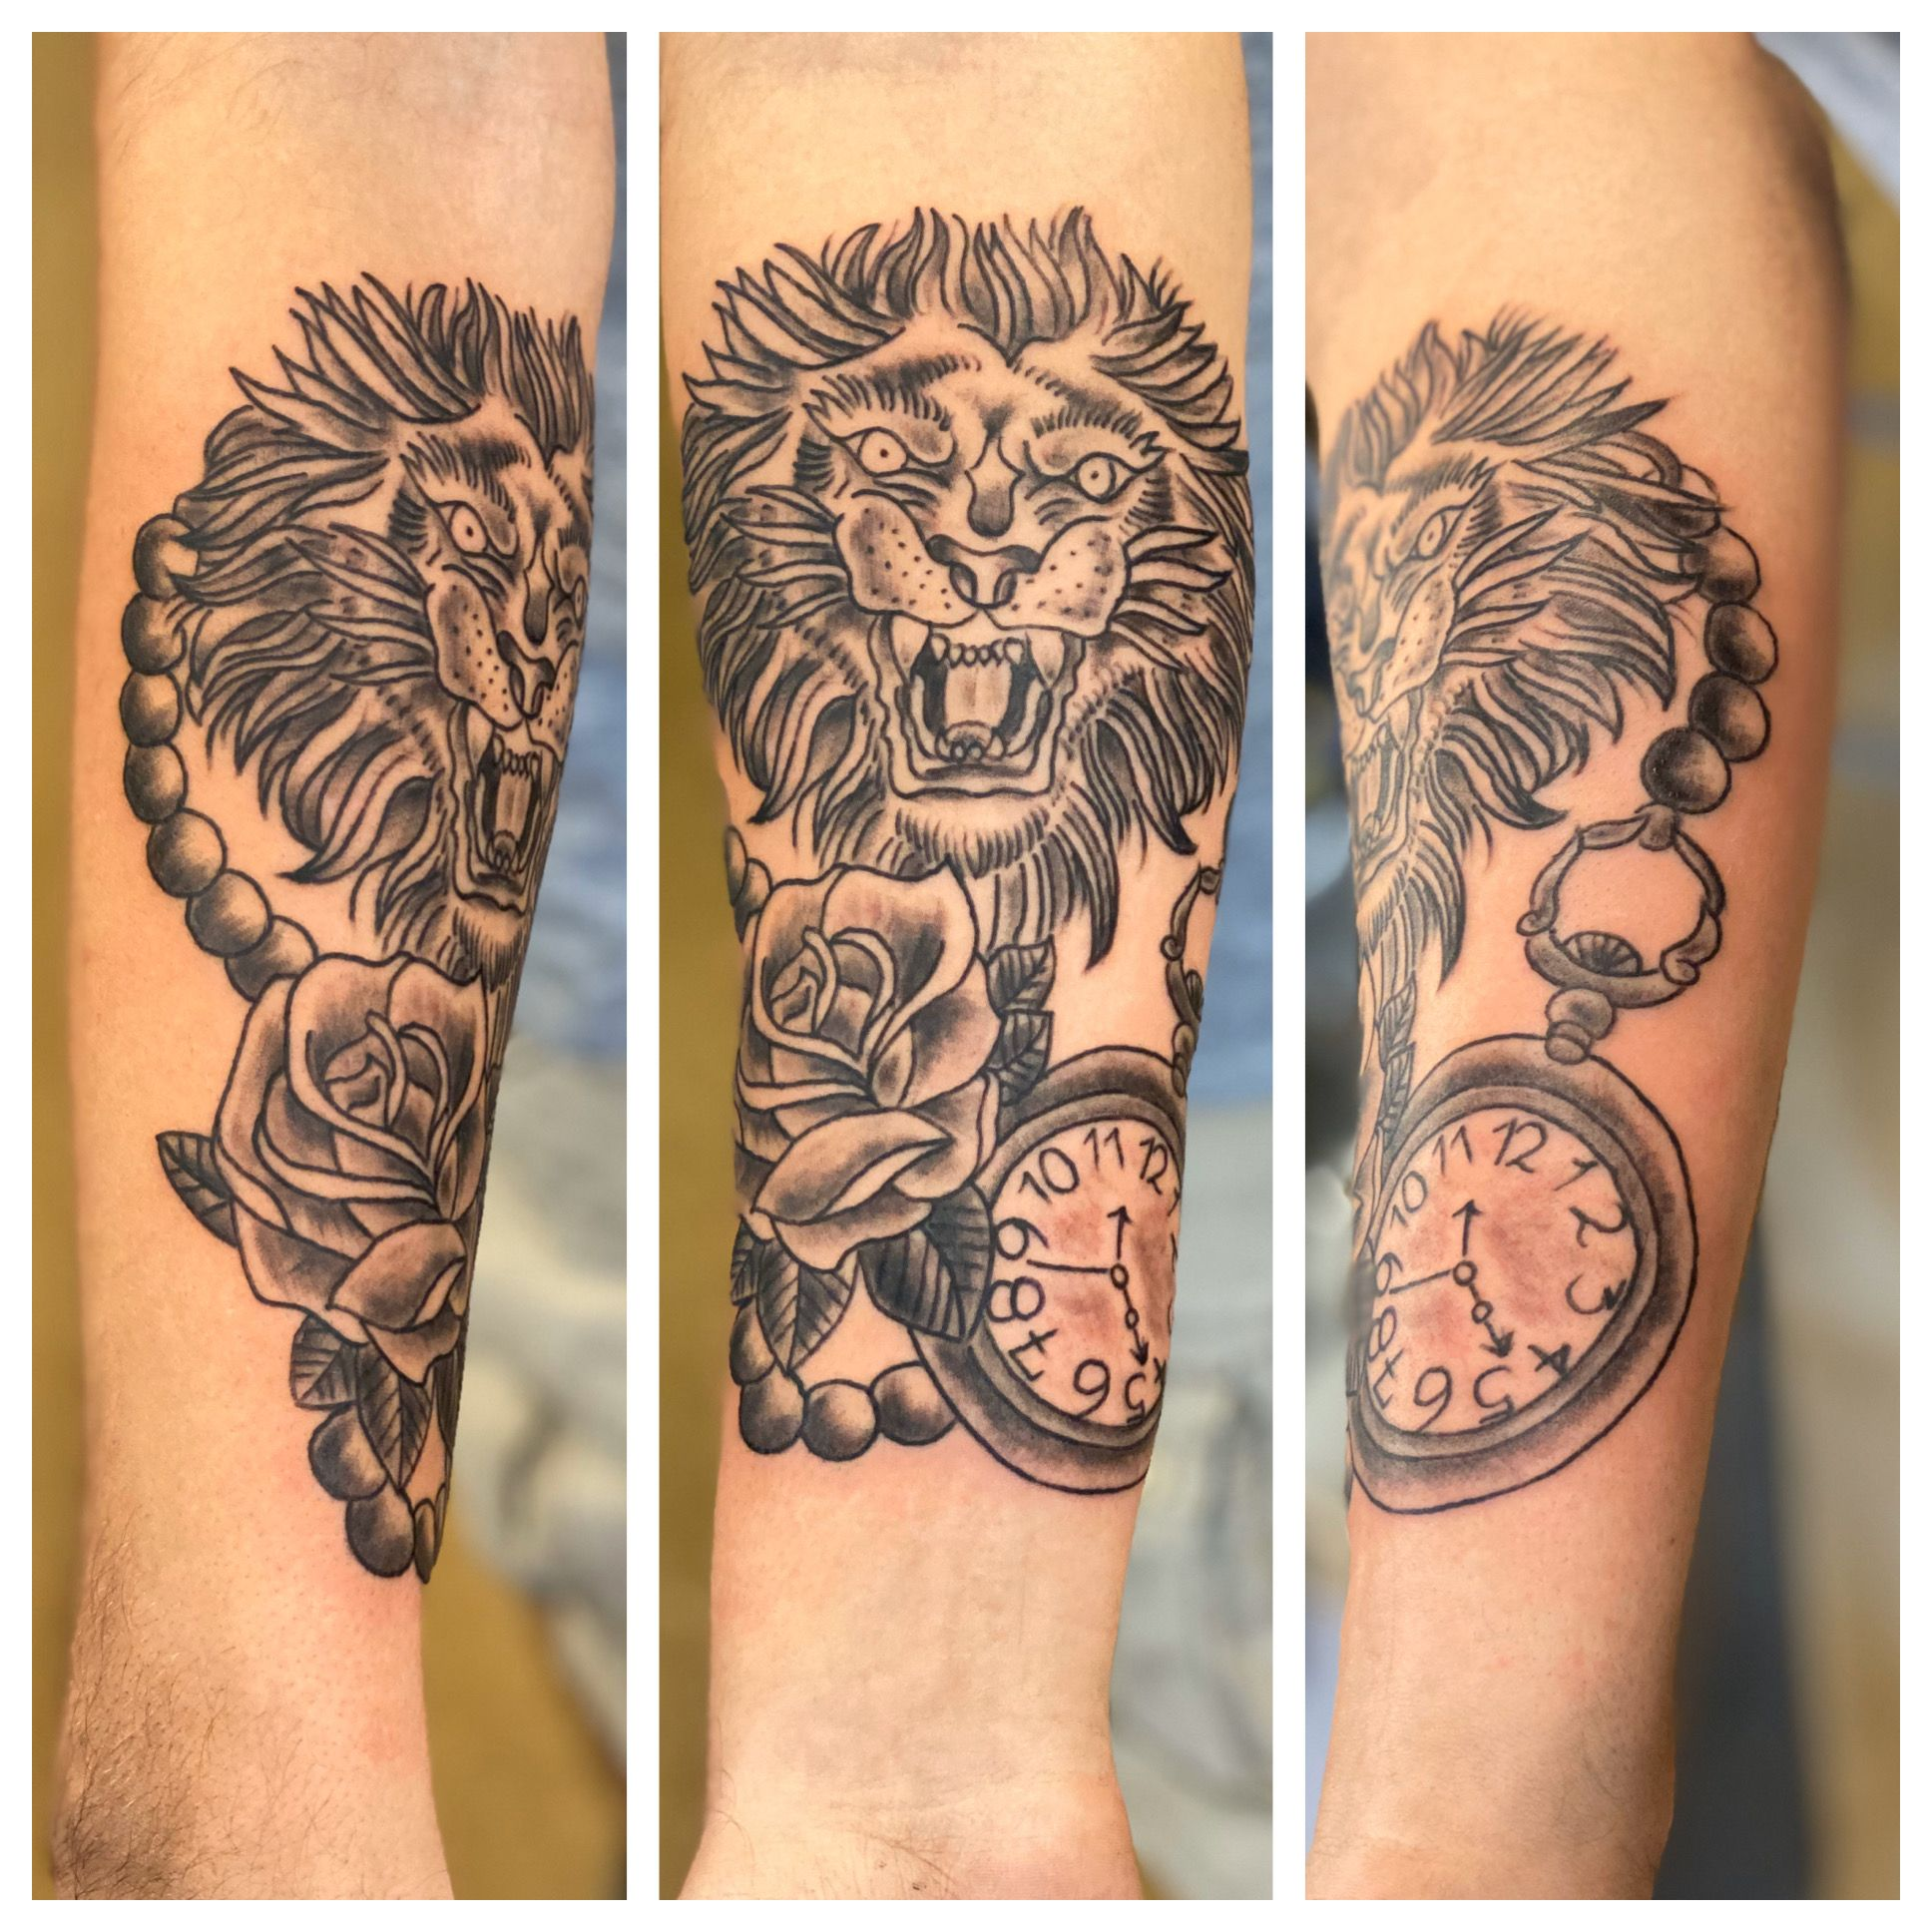 Pin by brian kufner on sin on skin tattoo and piercing in